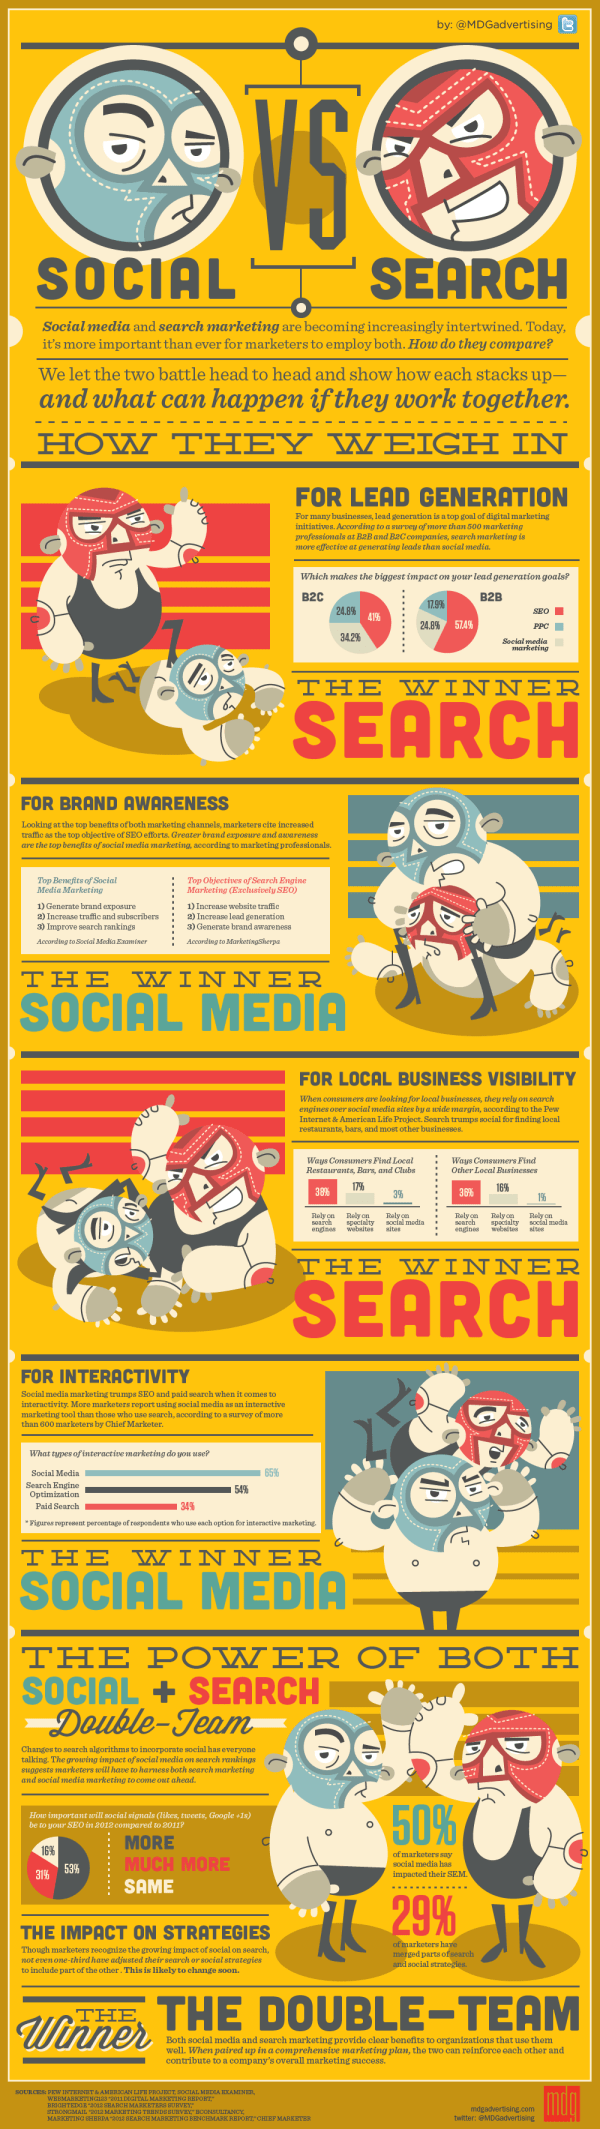 Social vs Search [infographic by MDG Advertising]